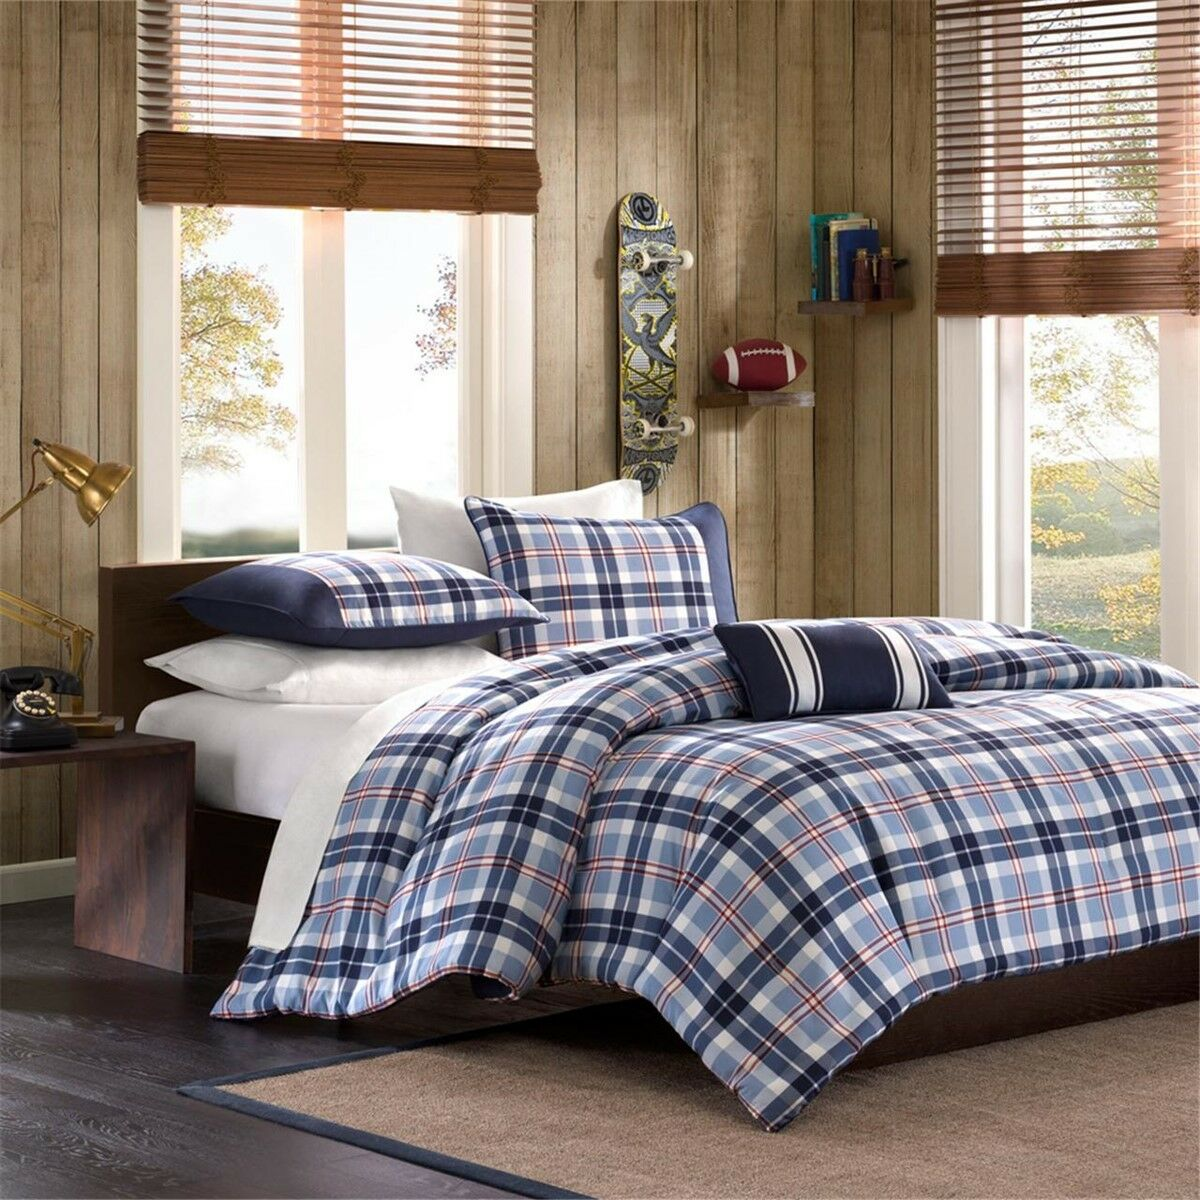 Full Queen Size Elliot Comforter Set bluee Transitional Mi Zone MZ10-047 New 2019